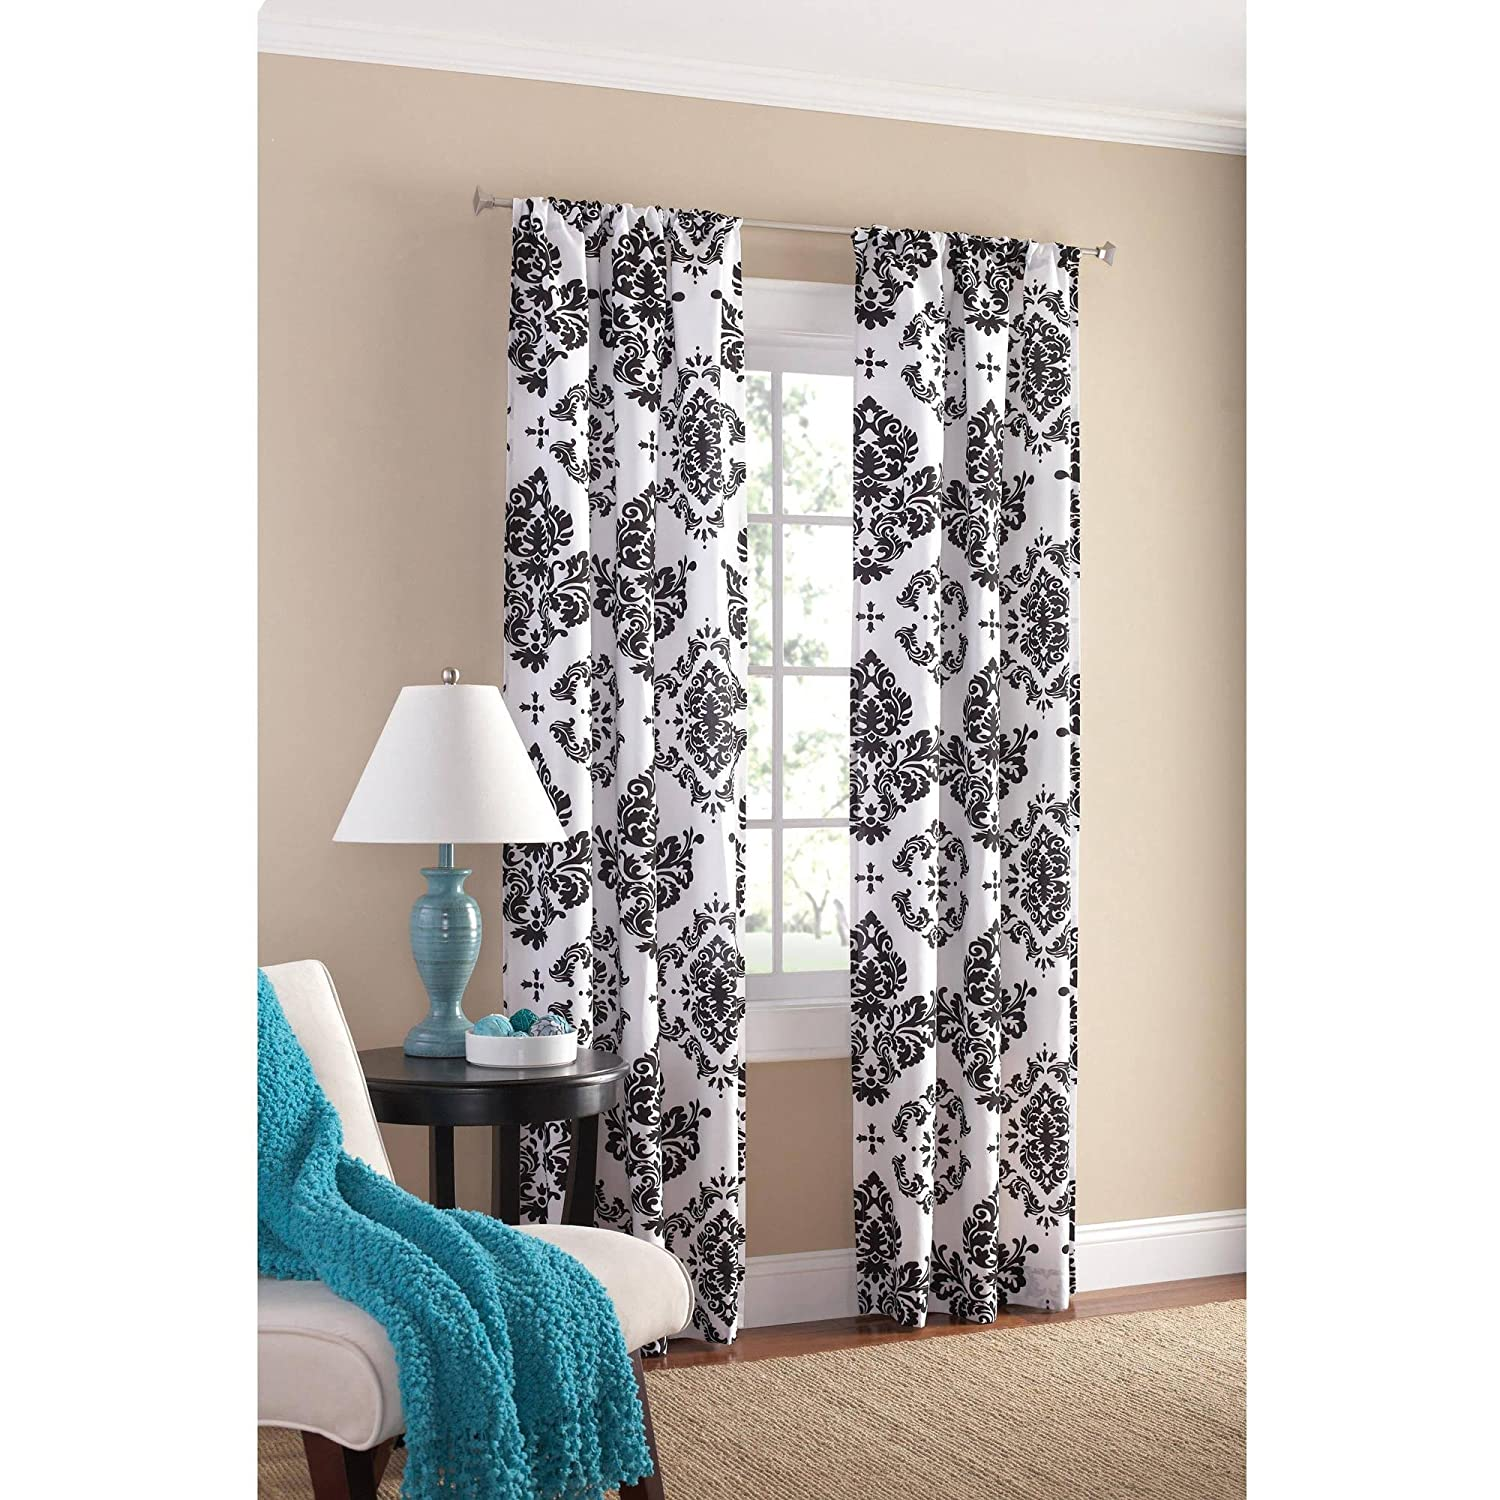 Amazon Black And White Damask Curtain Panel Set Of 2 40x84 Inch Home Kitchen